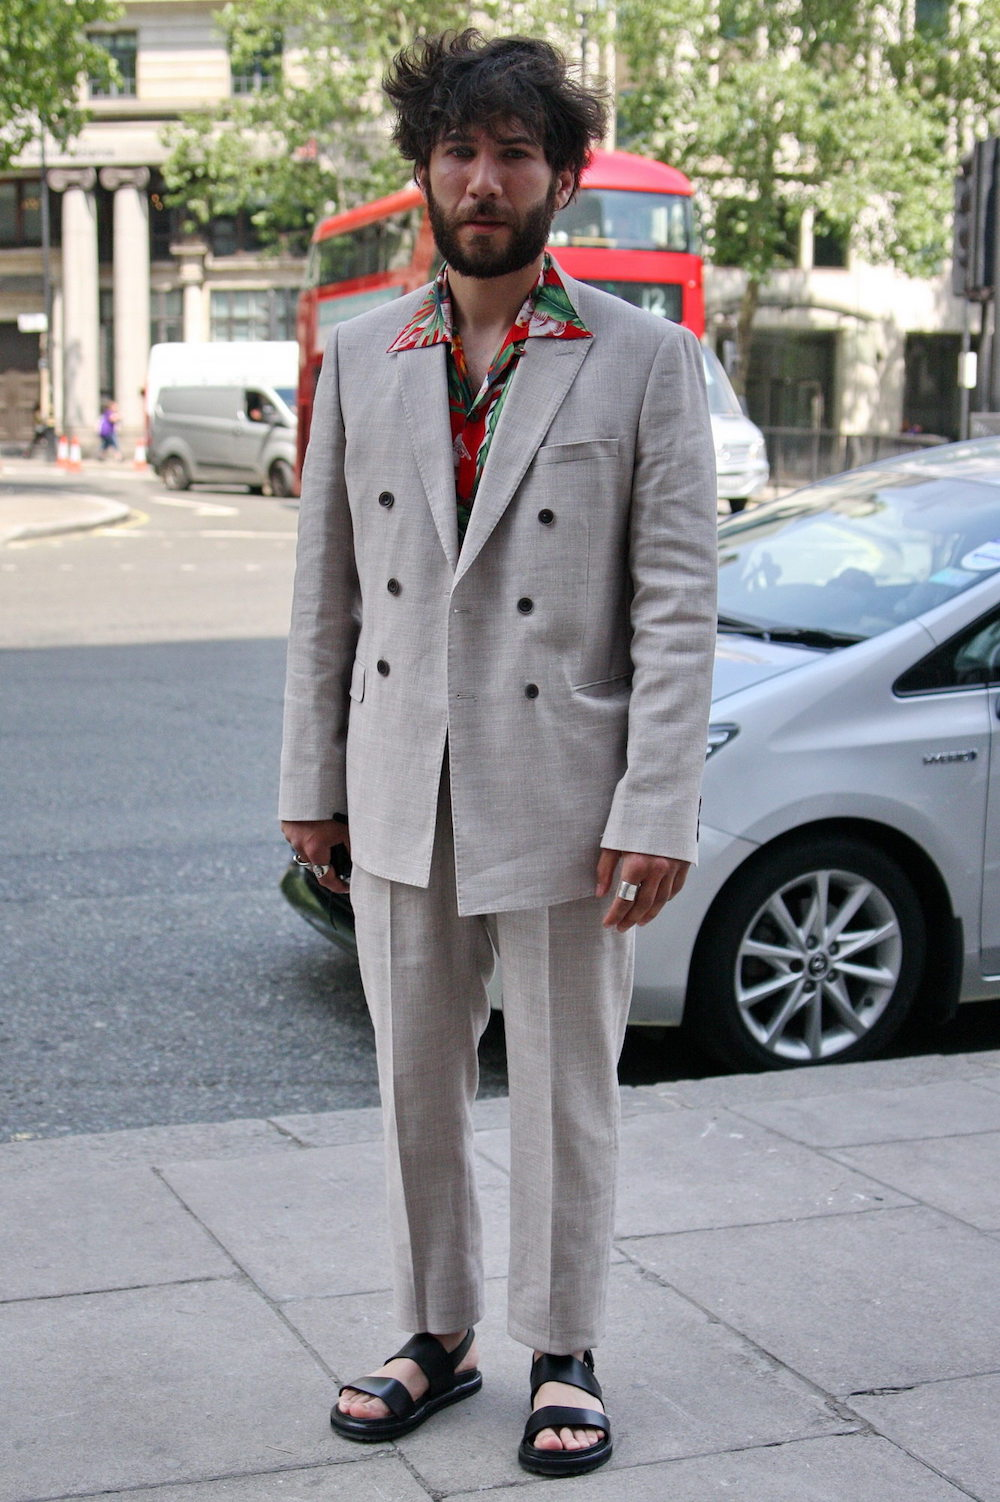 Great Tips For Men on How To Be Styled and Fashionable